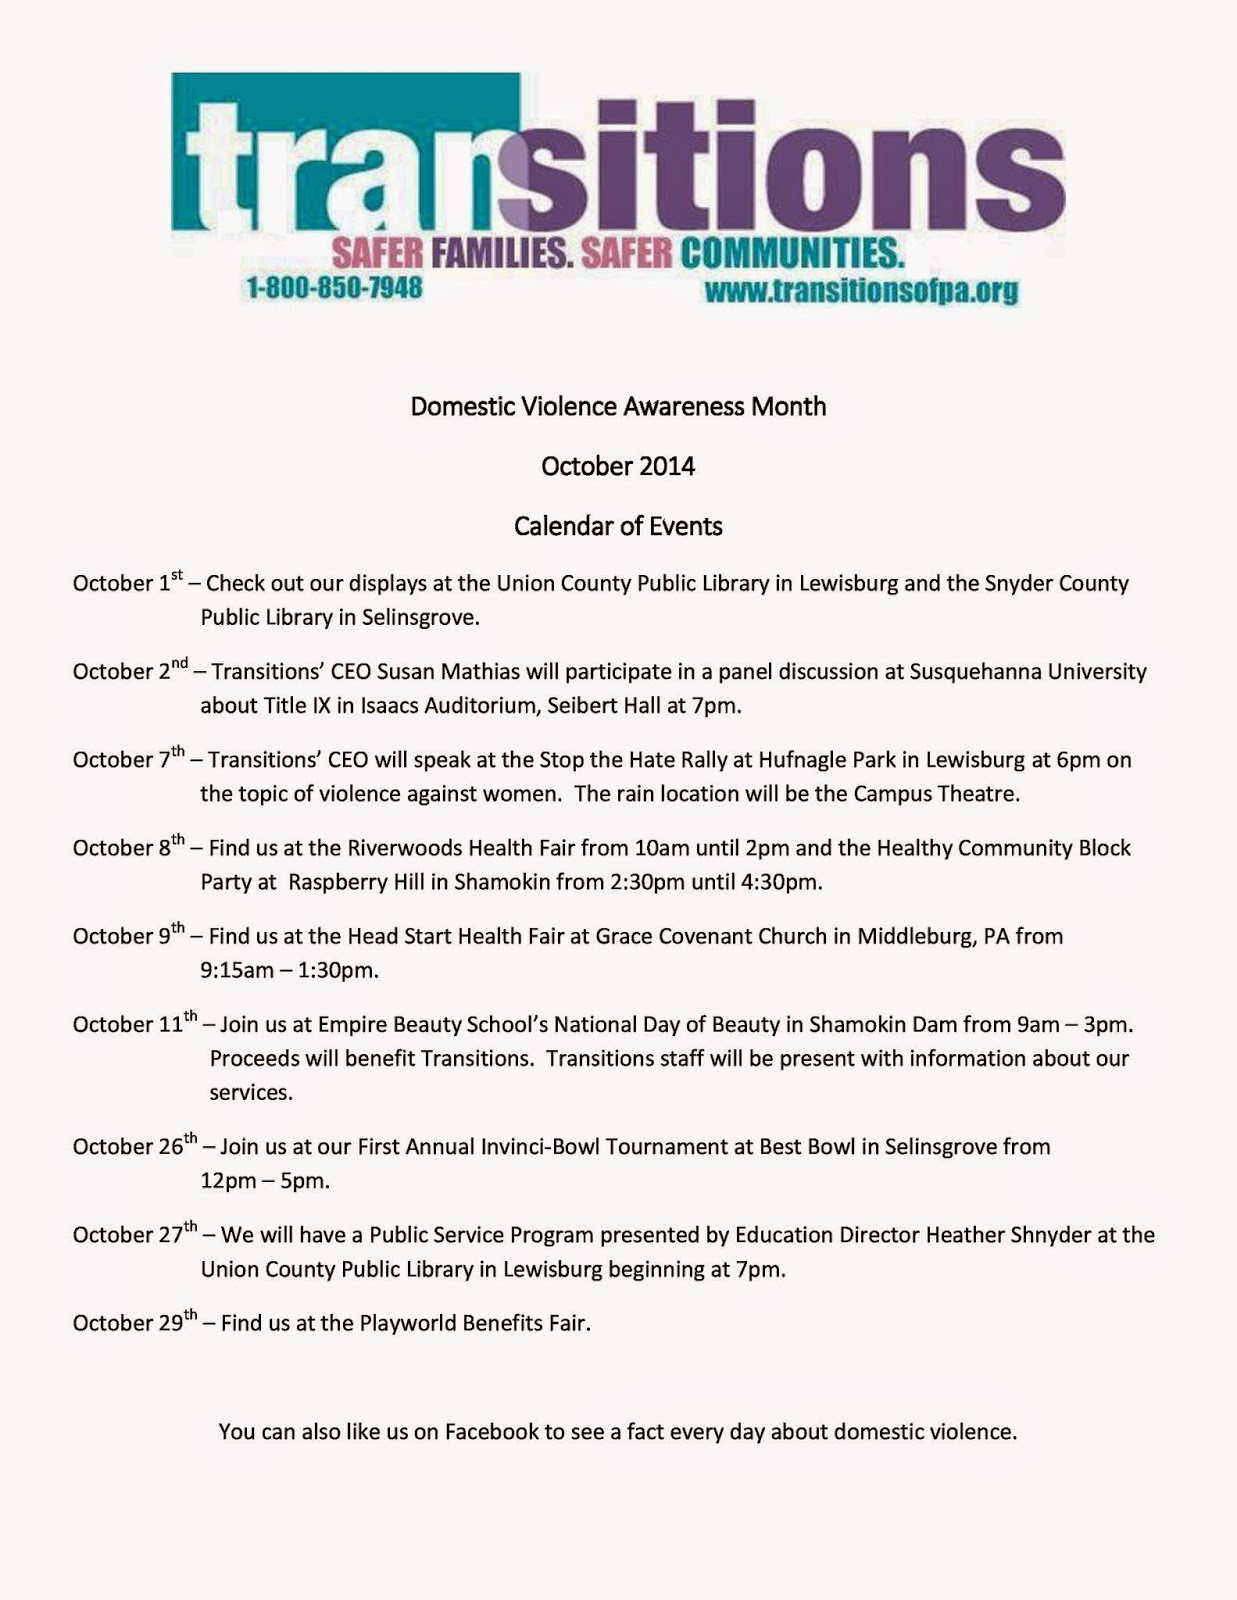 Overview Of Domestic Violence Awareness Month Activities